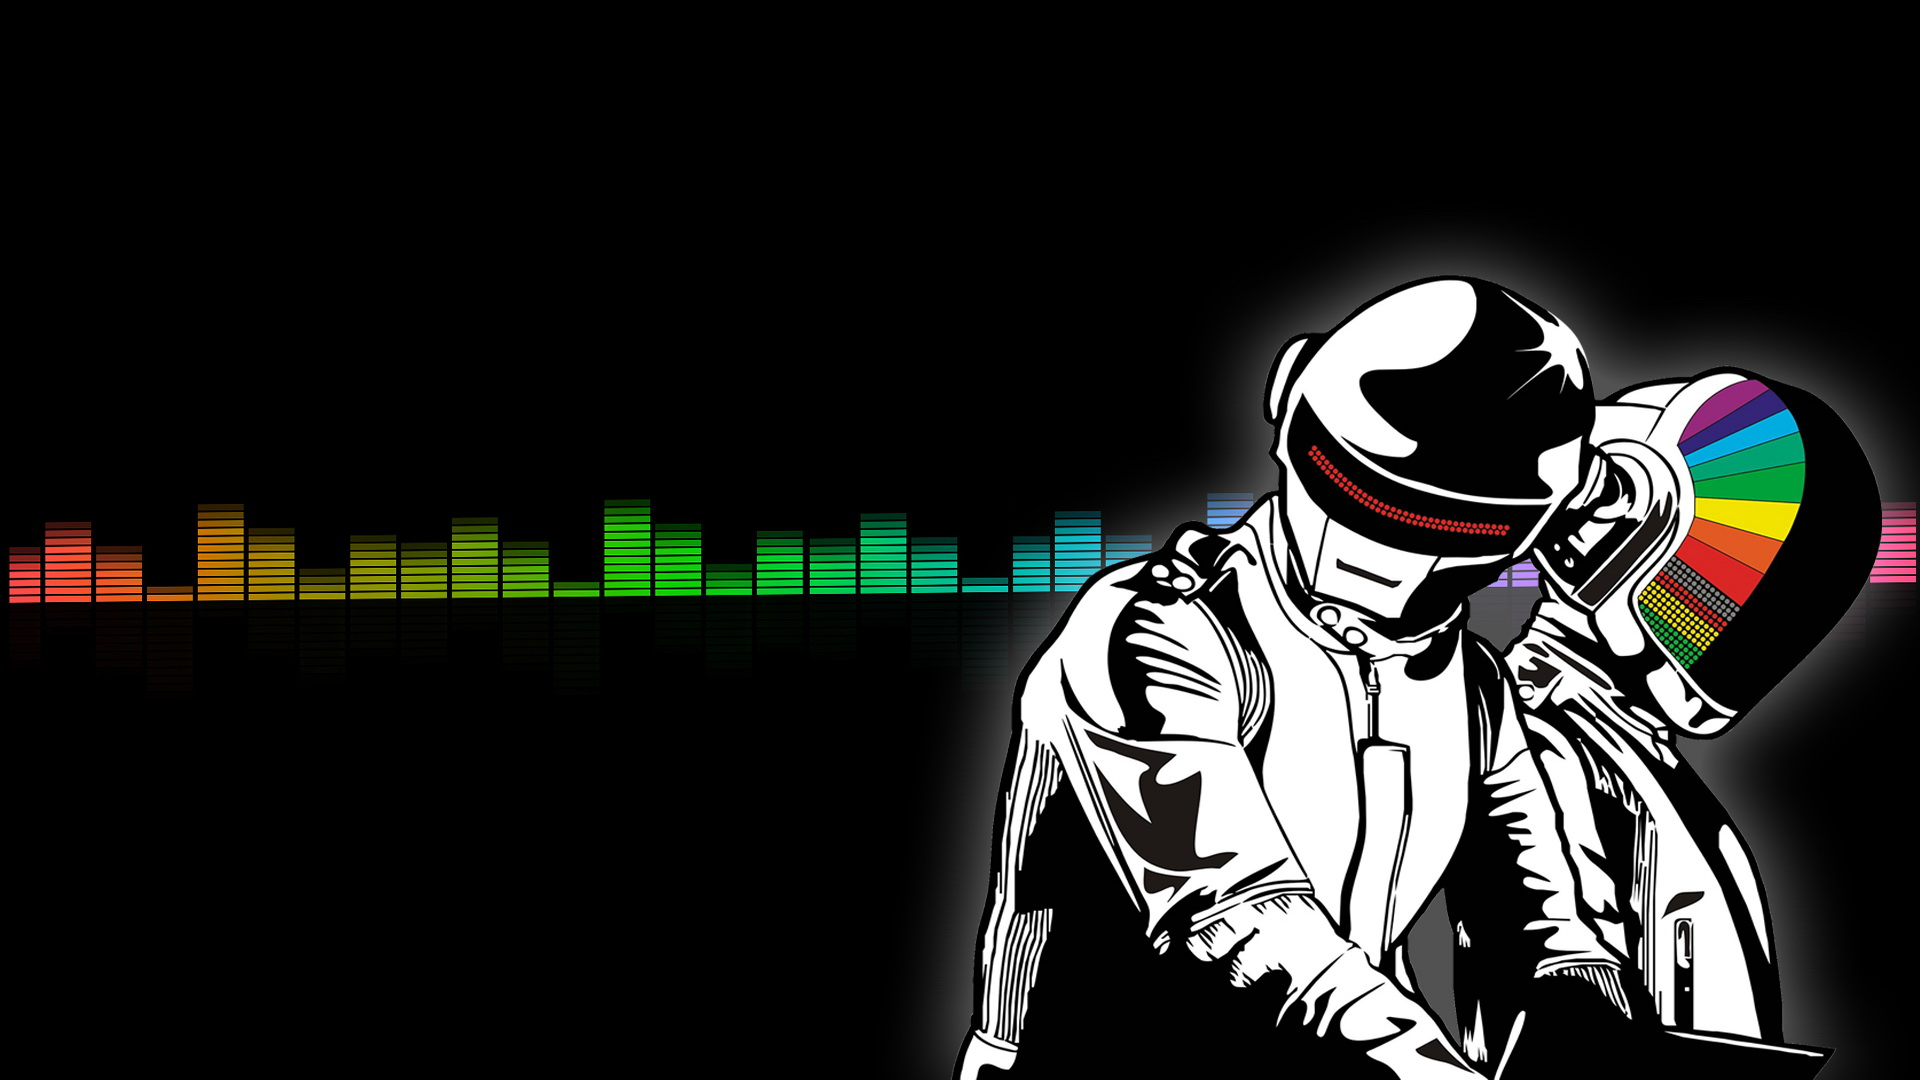 Cool Daft Punk Wallpaper 8070